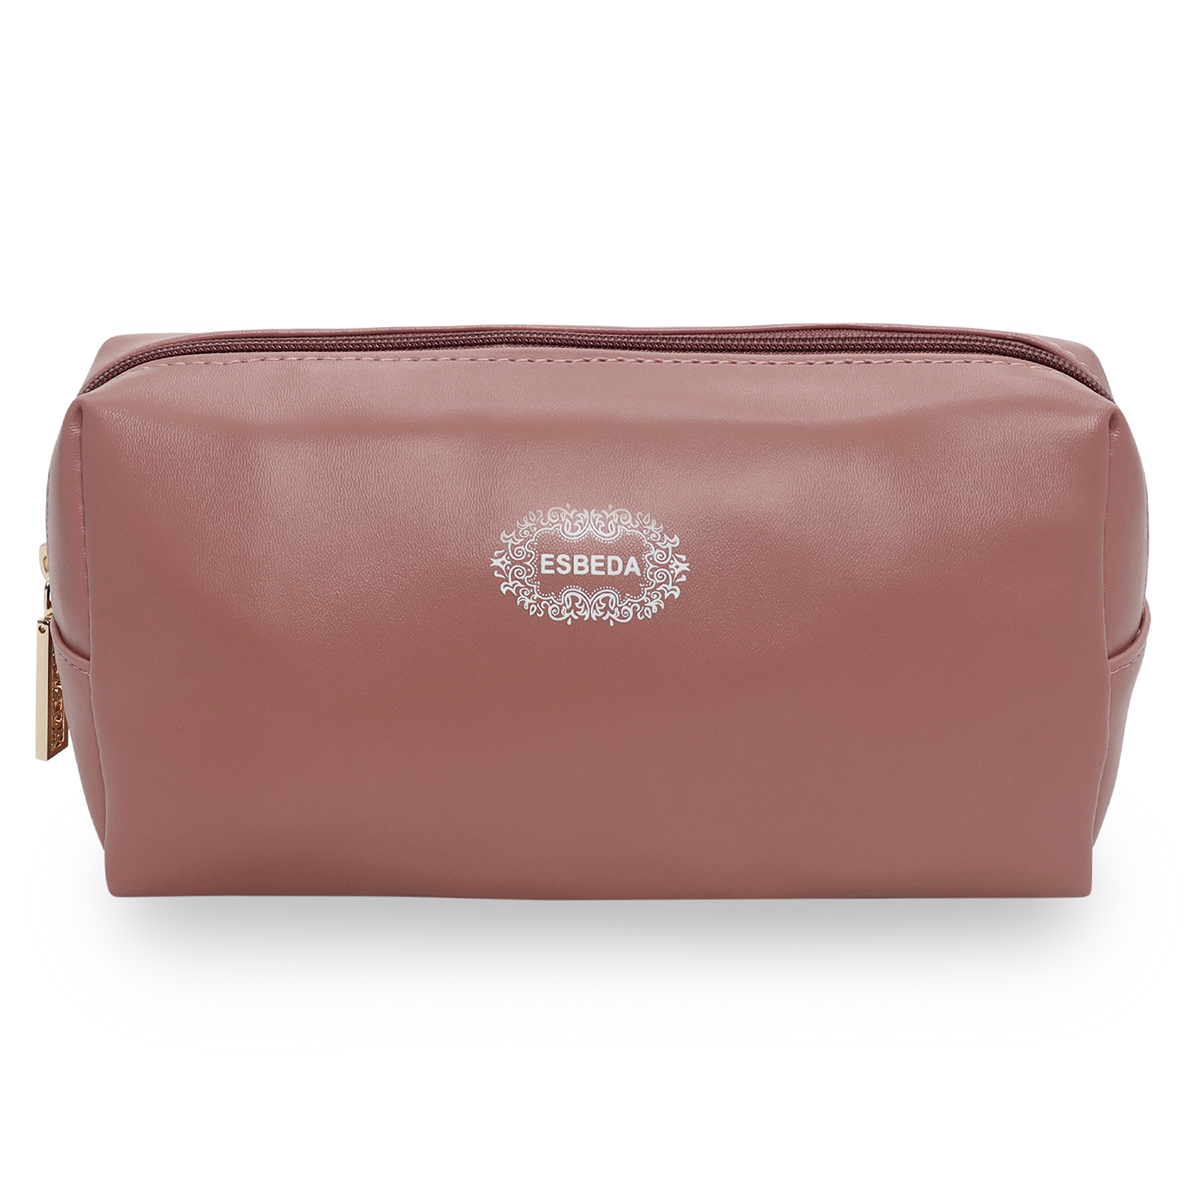 ESBEDA | ESBEDA Simple Peach Color Cosmetic Bag Portable Makeup Pouch for Women Multifunctional Travel Storage Toiletry Bag